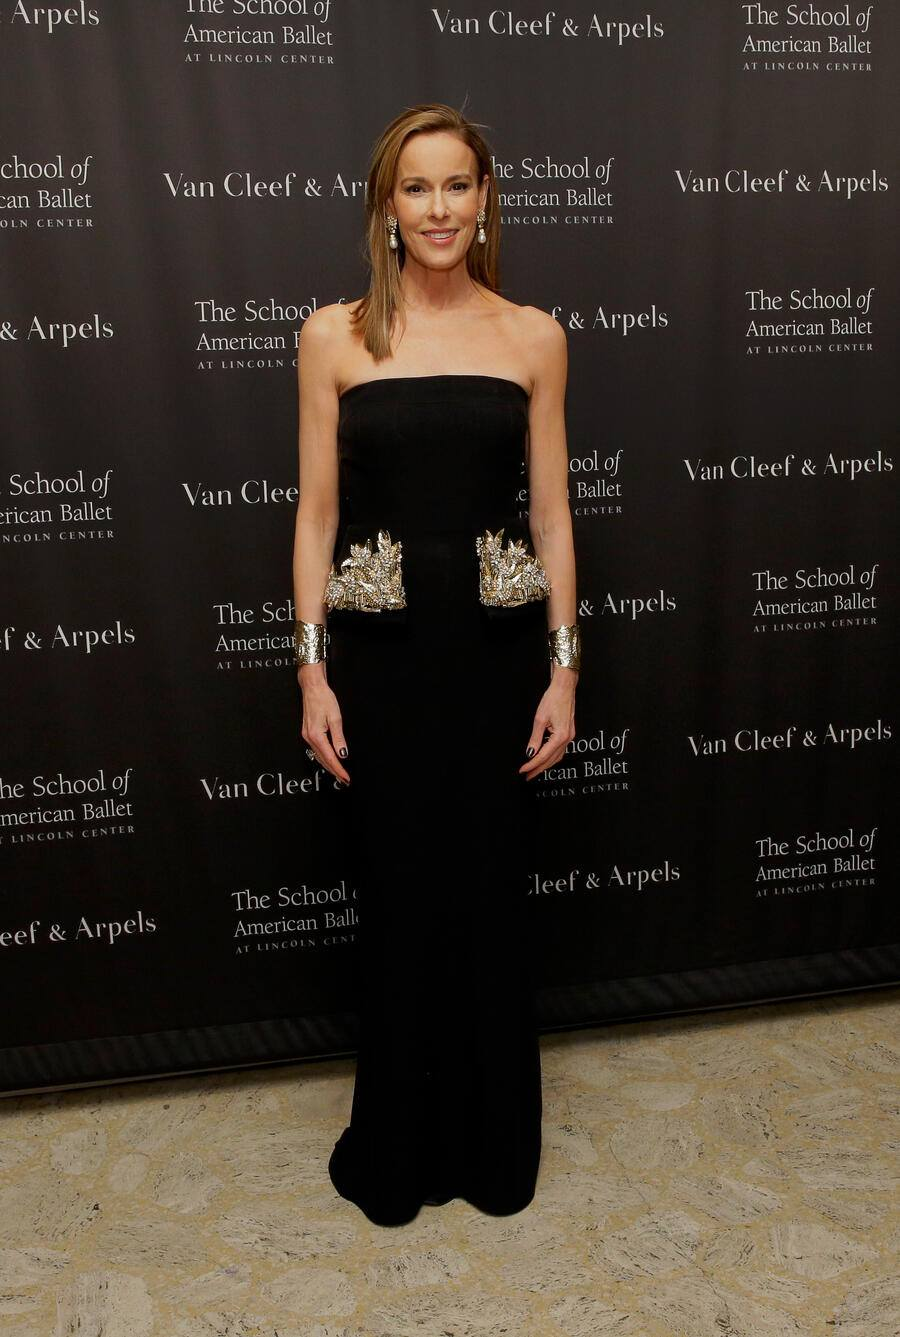 NEW YORK, NY - MARCH 03:  Julia M. Flesher Koch attends the School of American Ballet 2014 Winter Ball at David Koch Theatre at Lincoln Center on March 3, 2014 in New York City.  (Photo by Andrew Toth/FilmMagic)